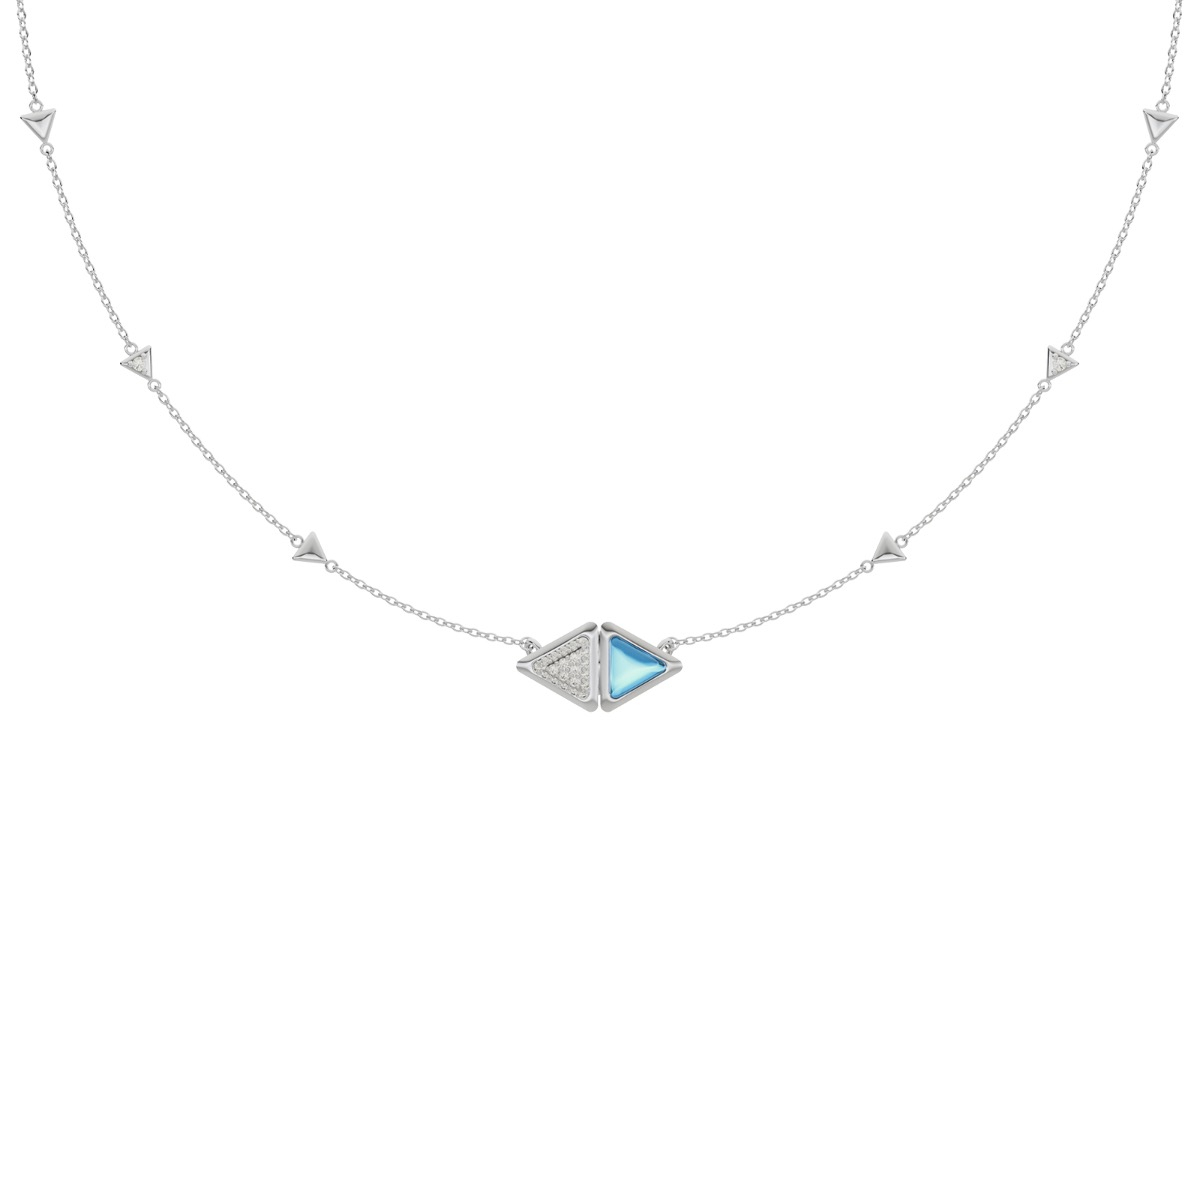 Necklace Mirror Exquisite White Gold Blue Topaz and Diamonds